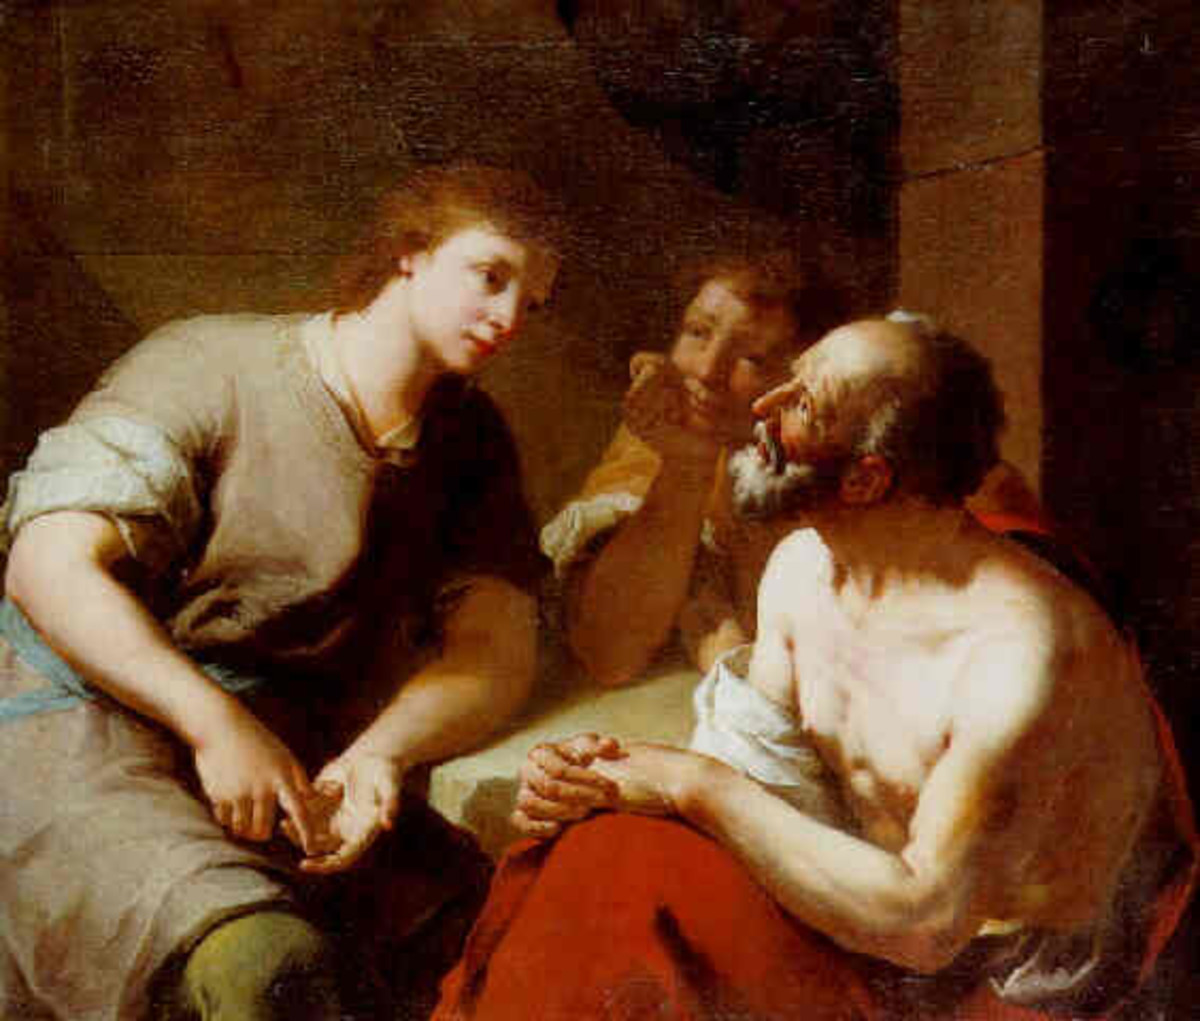 Joseph Interprets Dreams in Prison